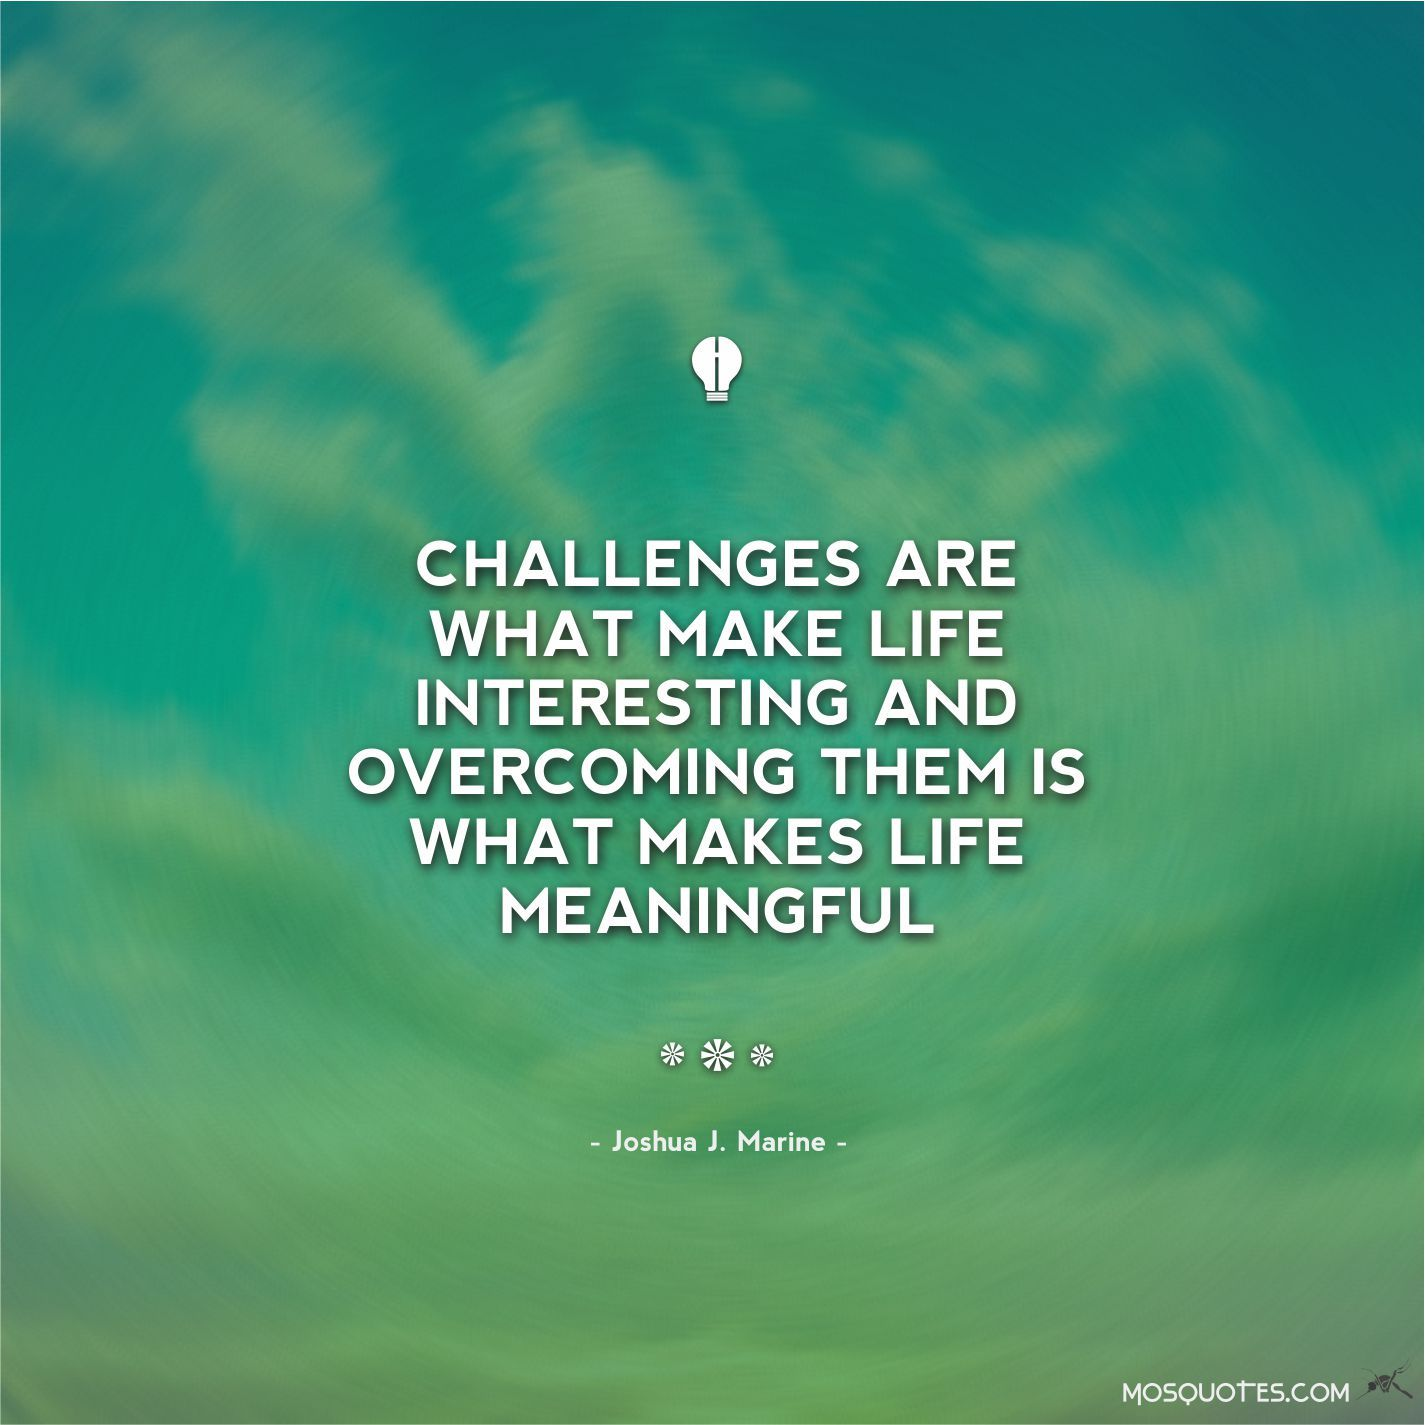 Quotes About Challenges Life Inspirational Quotes Challenges Are What Make Life